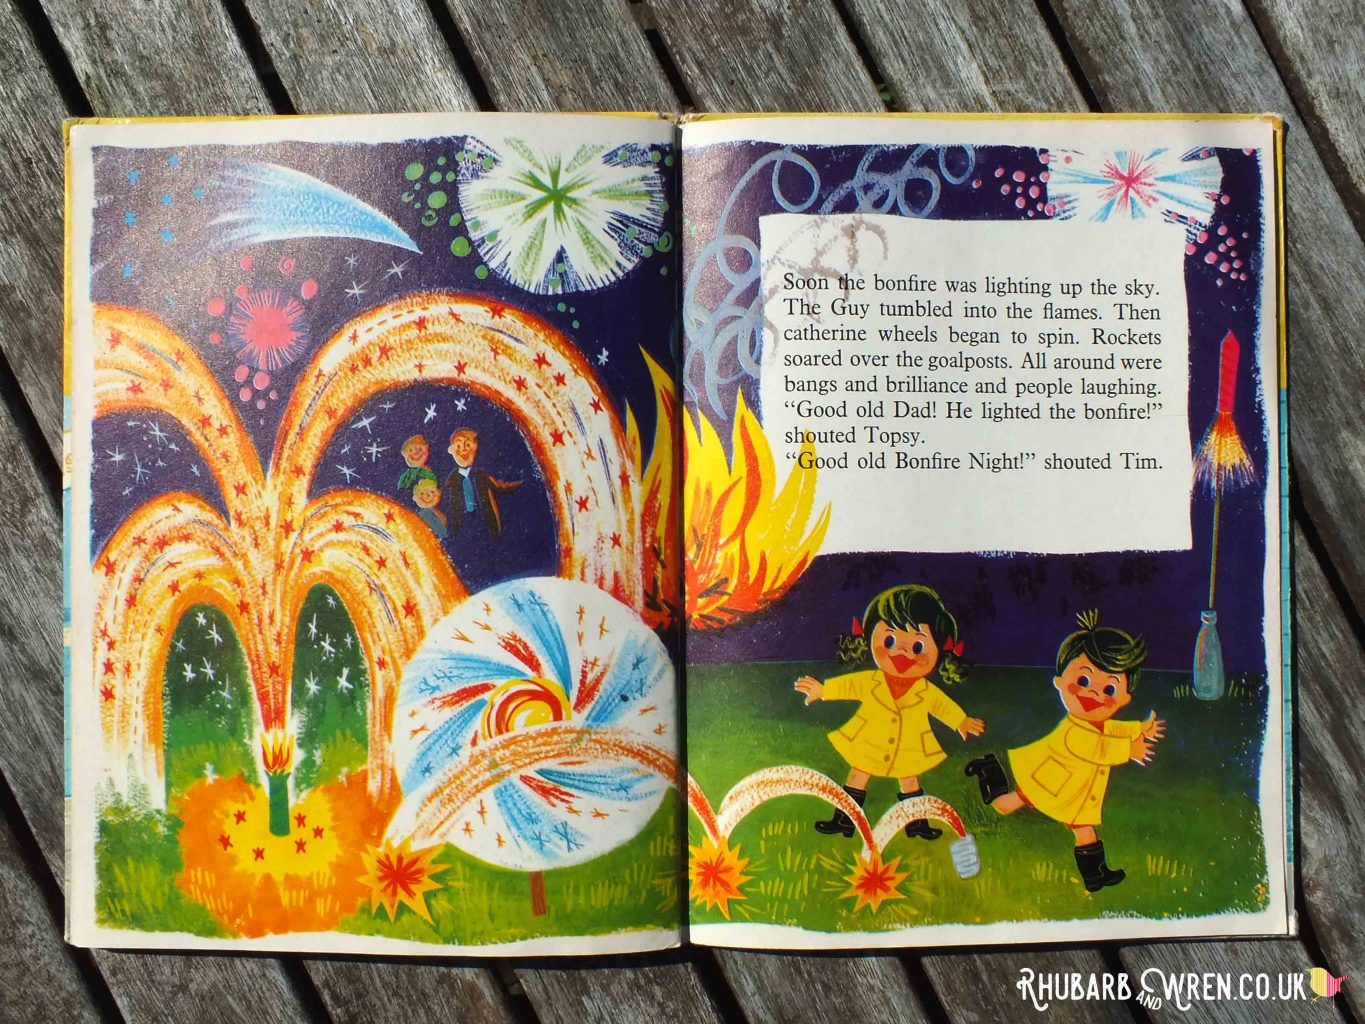 Illustration of Topsy and Tim dancing among exploding fireworks, from Topsy and Tim's Bonfire Night